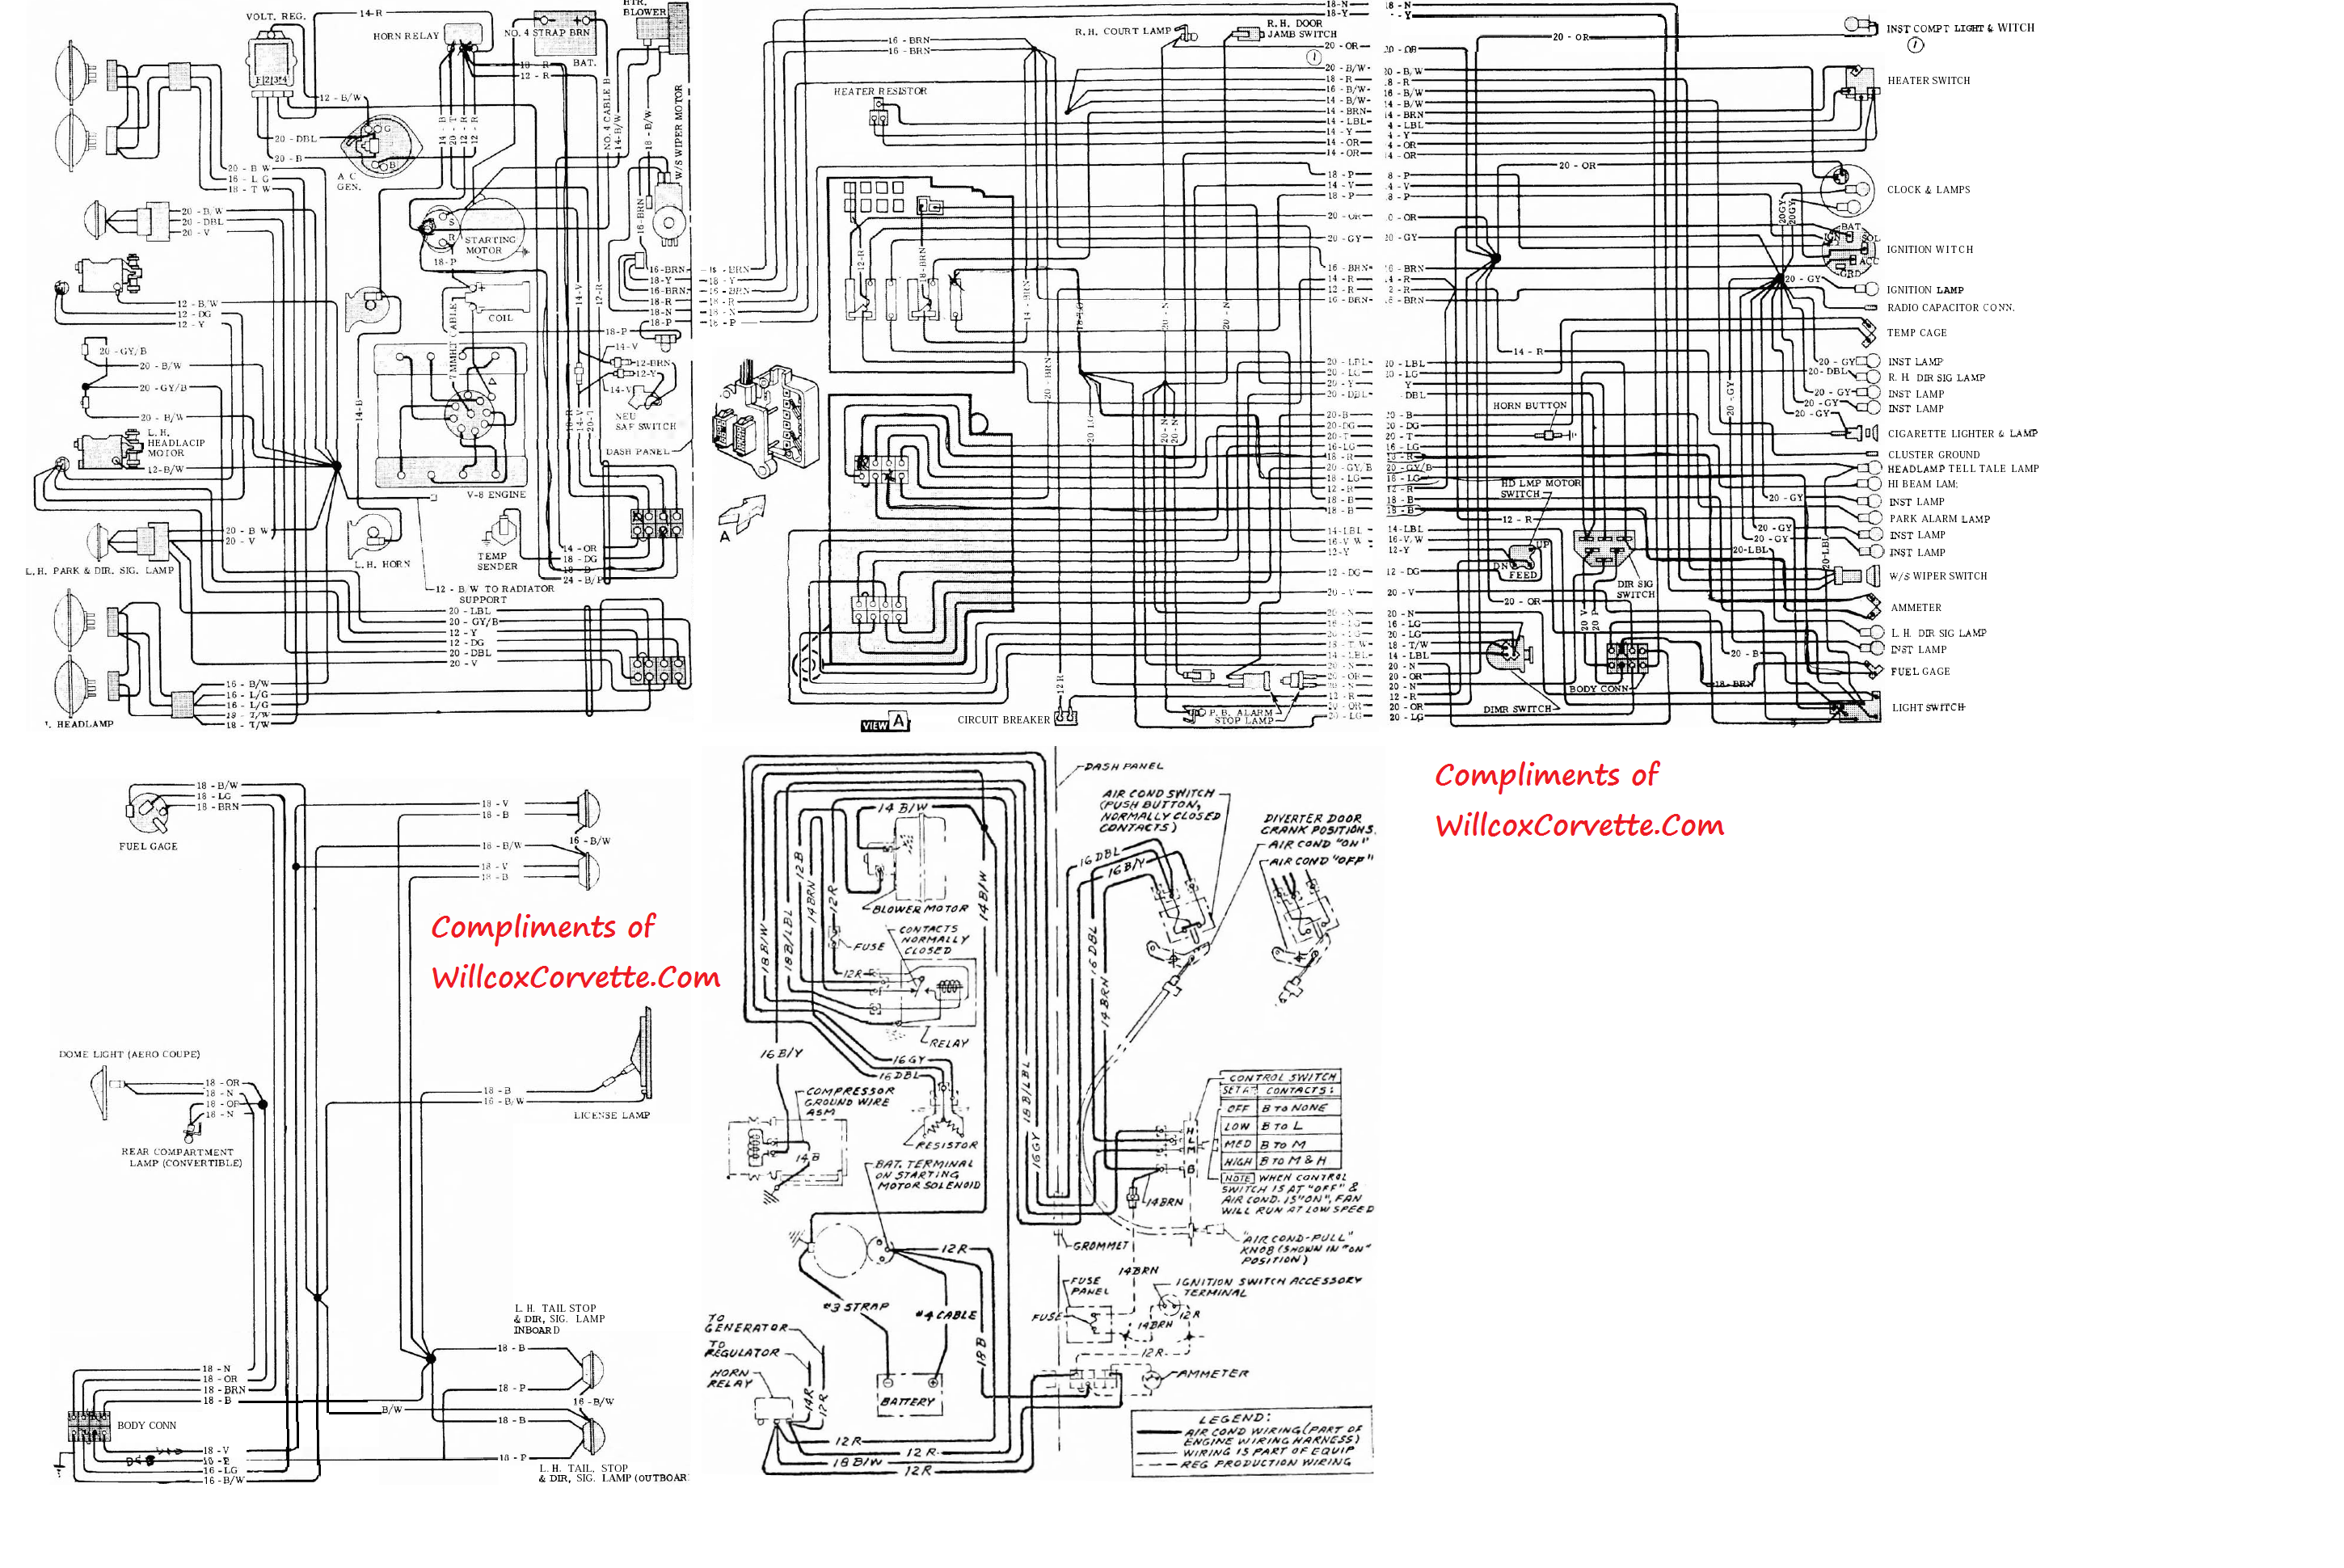 1963 Corvette Tracer Wiring Diagram Tracer Schematic 1963 corvette wiring diagram 1963 corvette oil filter \u2022 wiring Chevy Truck Wiring Harness at gsmportal.co